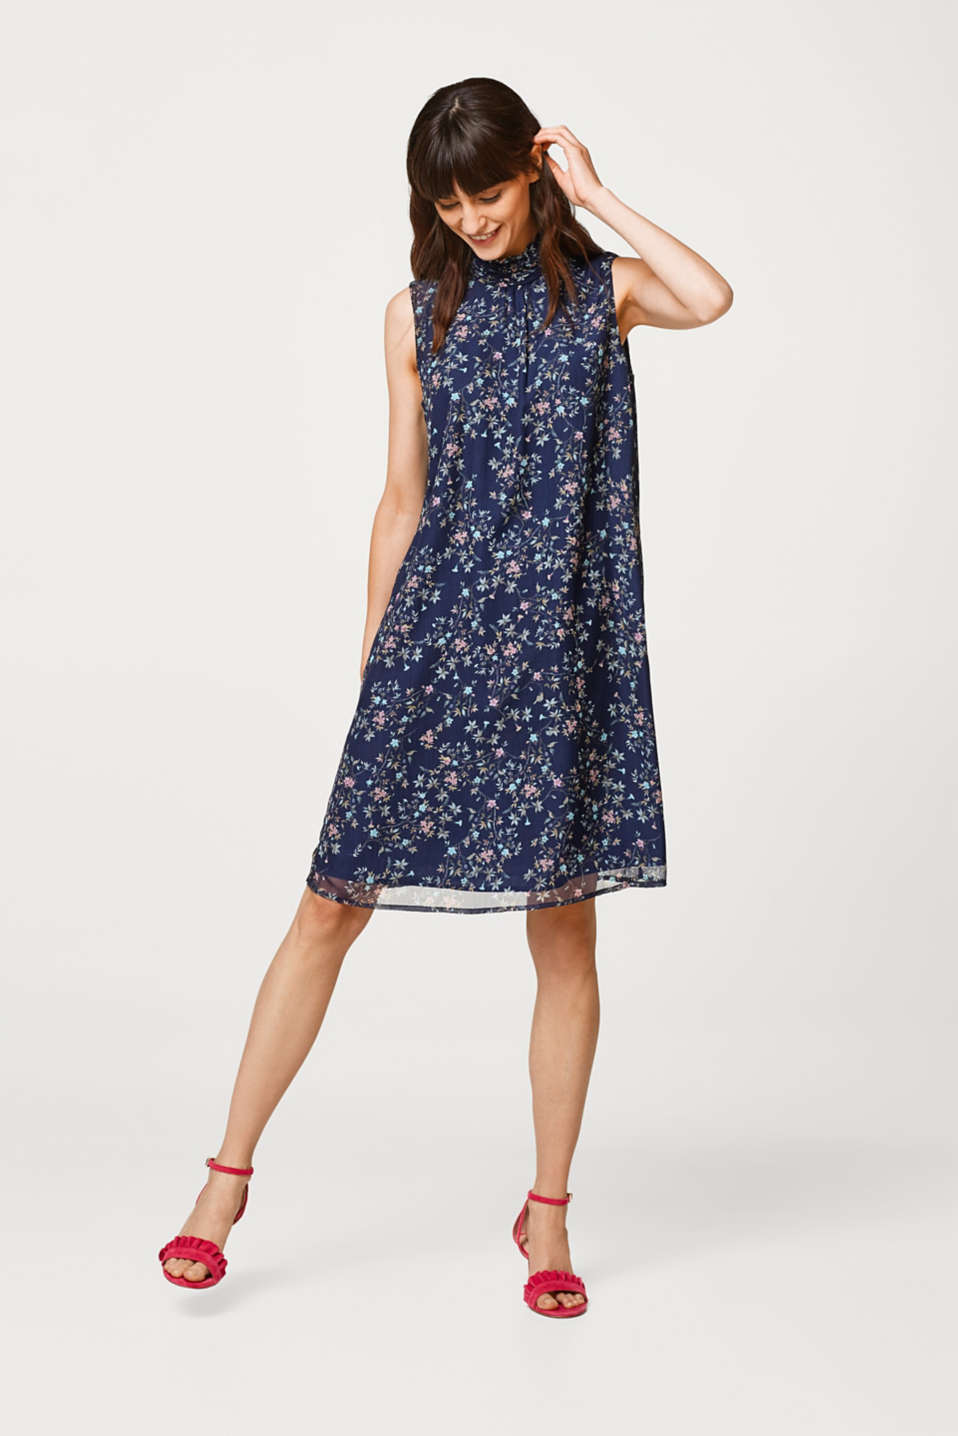 Dress in textured chiffon with a subtle A-line cut